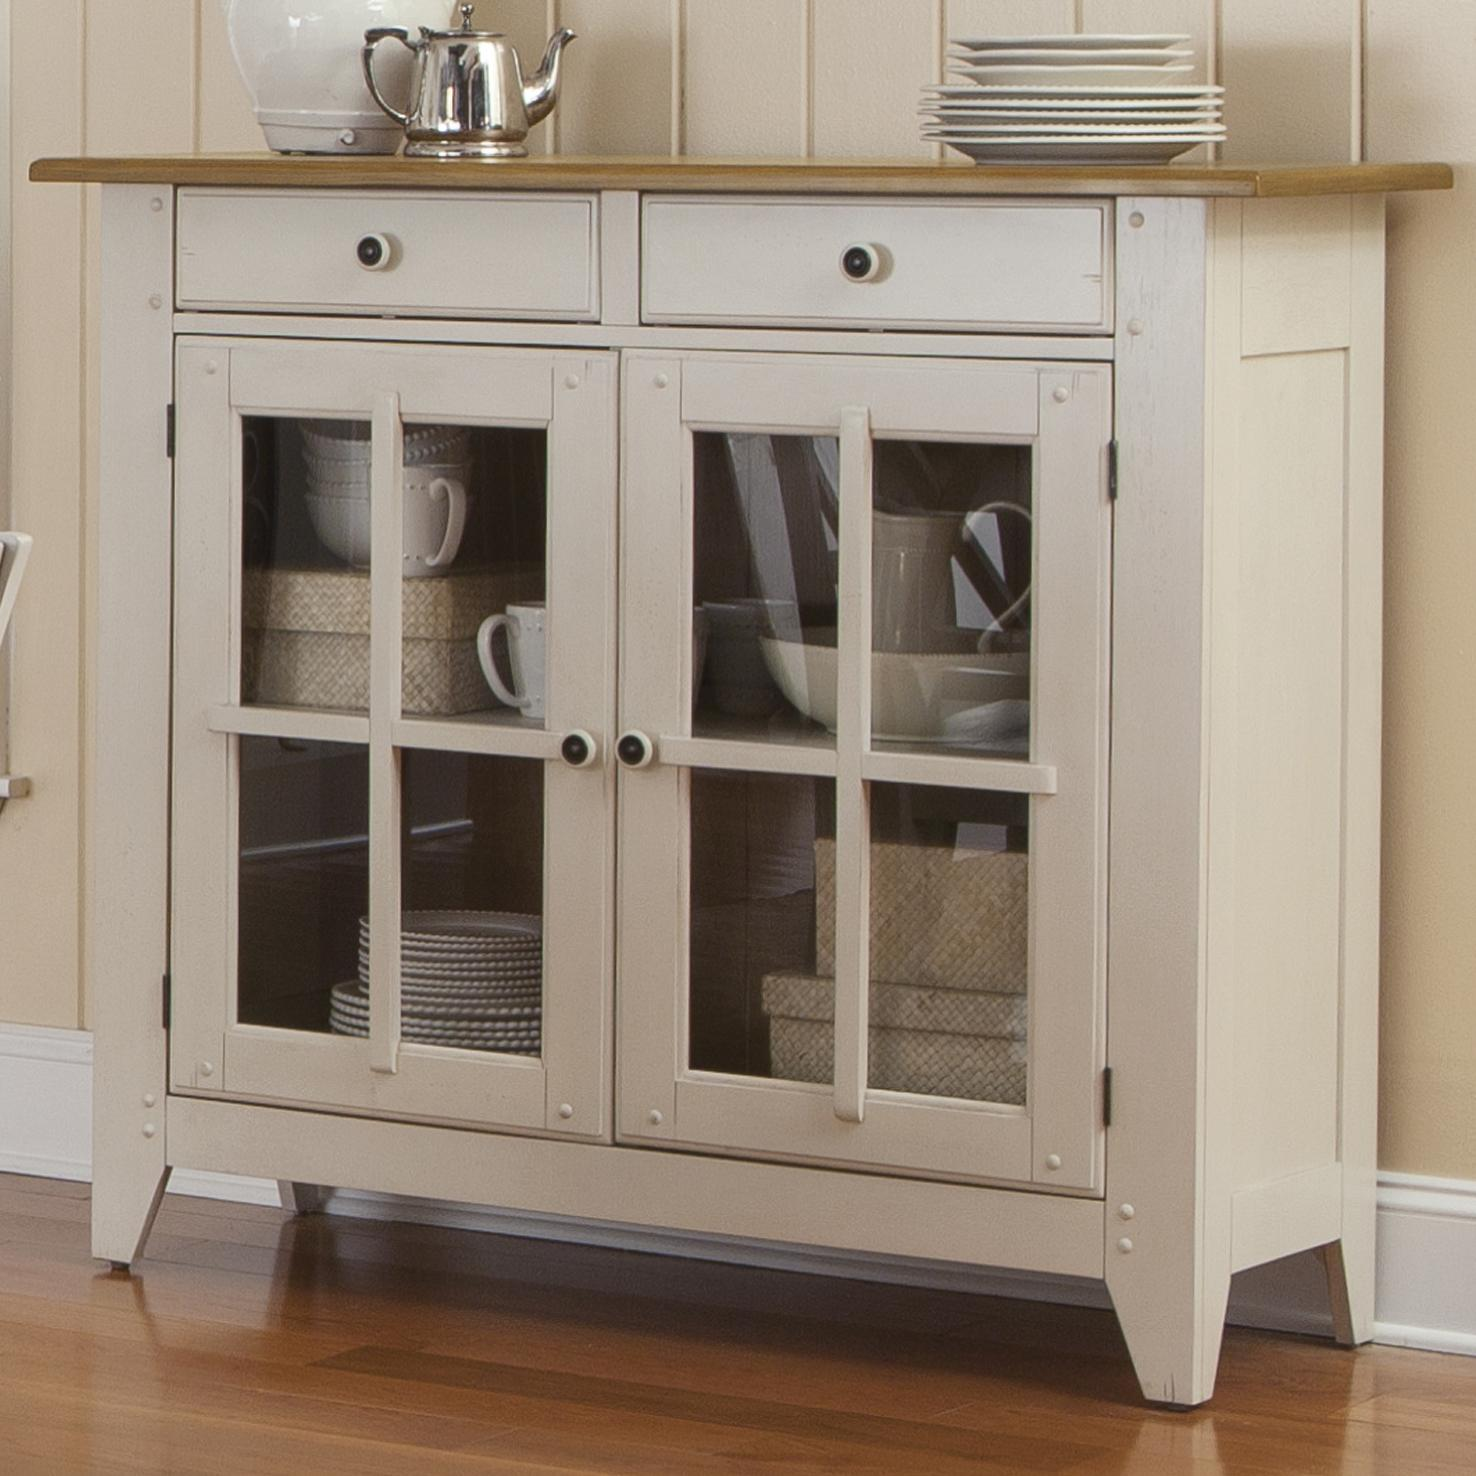 Dining Room Furniture Buffet Al Fresco Iii Buffet Style Dining Server By Liberty Furniture At Royal Furniture